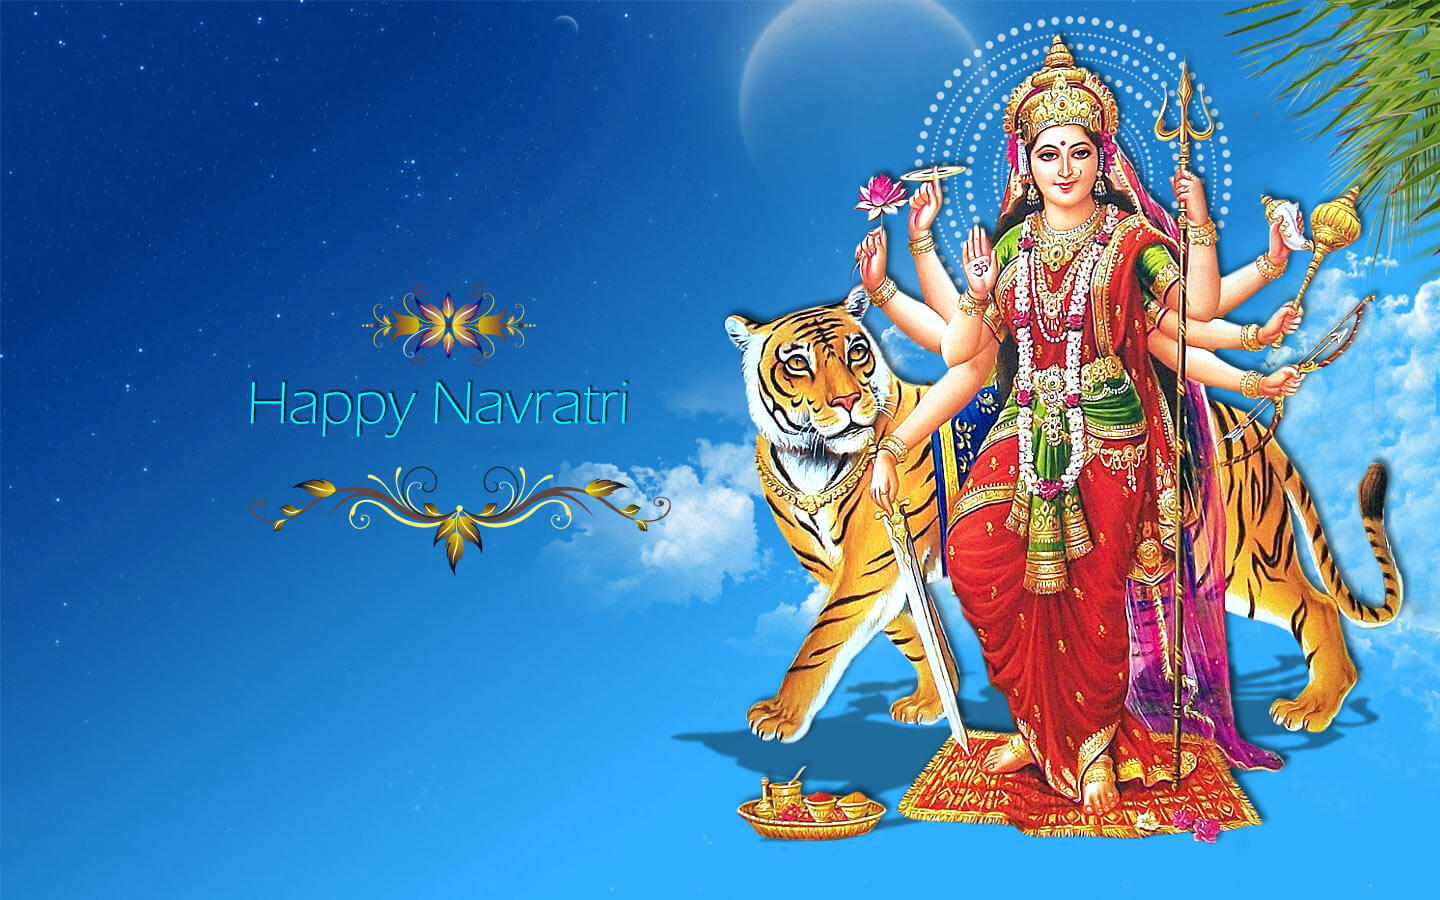 Jai Mata Di 3d Live Wallpaper Happy Navratri Wishes Images Quotes Sms Hd Wallpapers